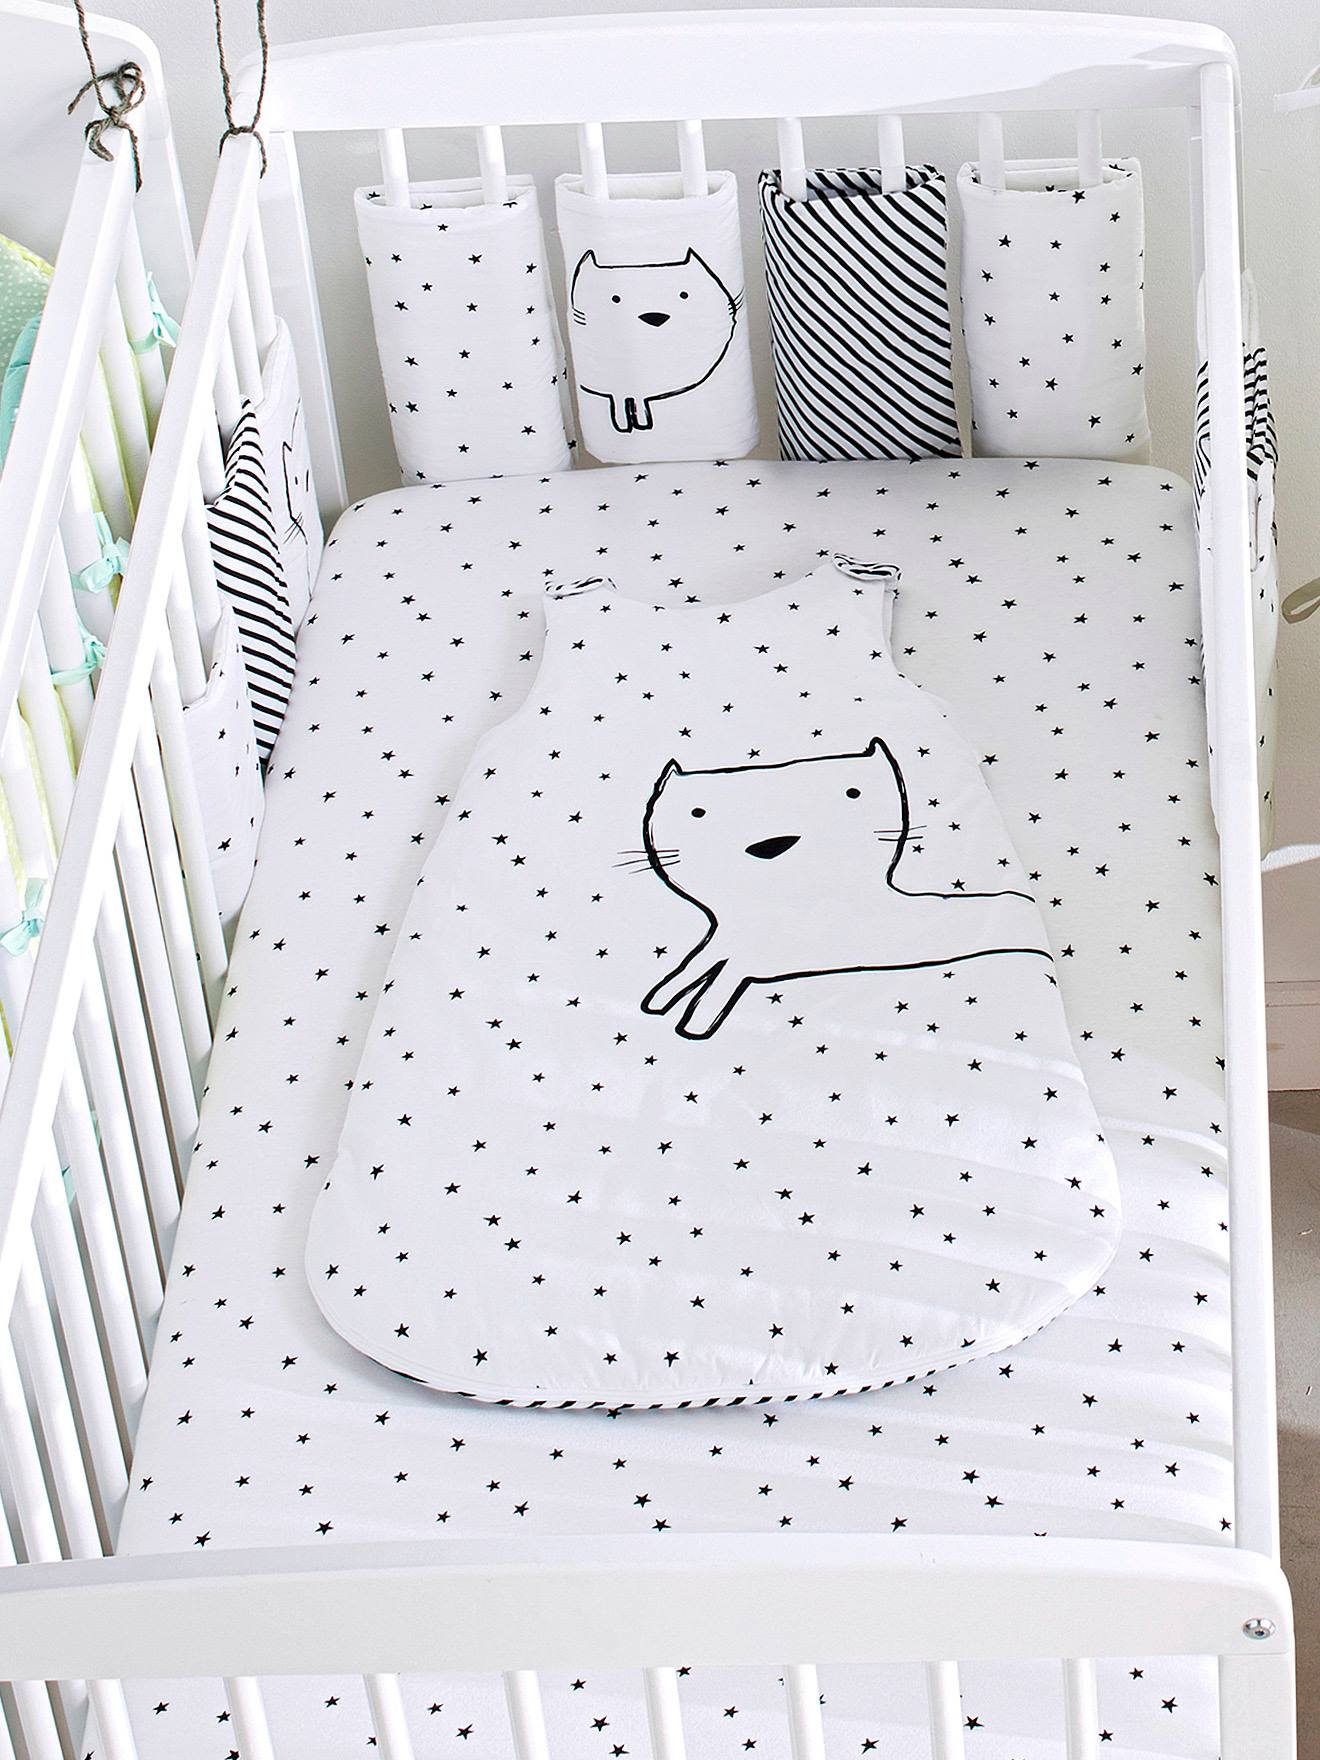 Set Of 2 Baby Fitted Sheets In Stretch Jersey Knit, Star Print   Grey Light  All Over Printed, Furniture U0026 Bedding | Vertbaudet